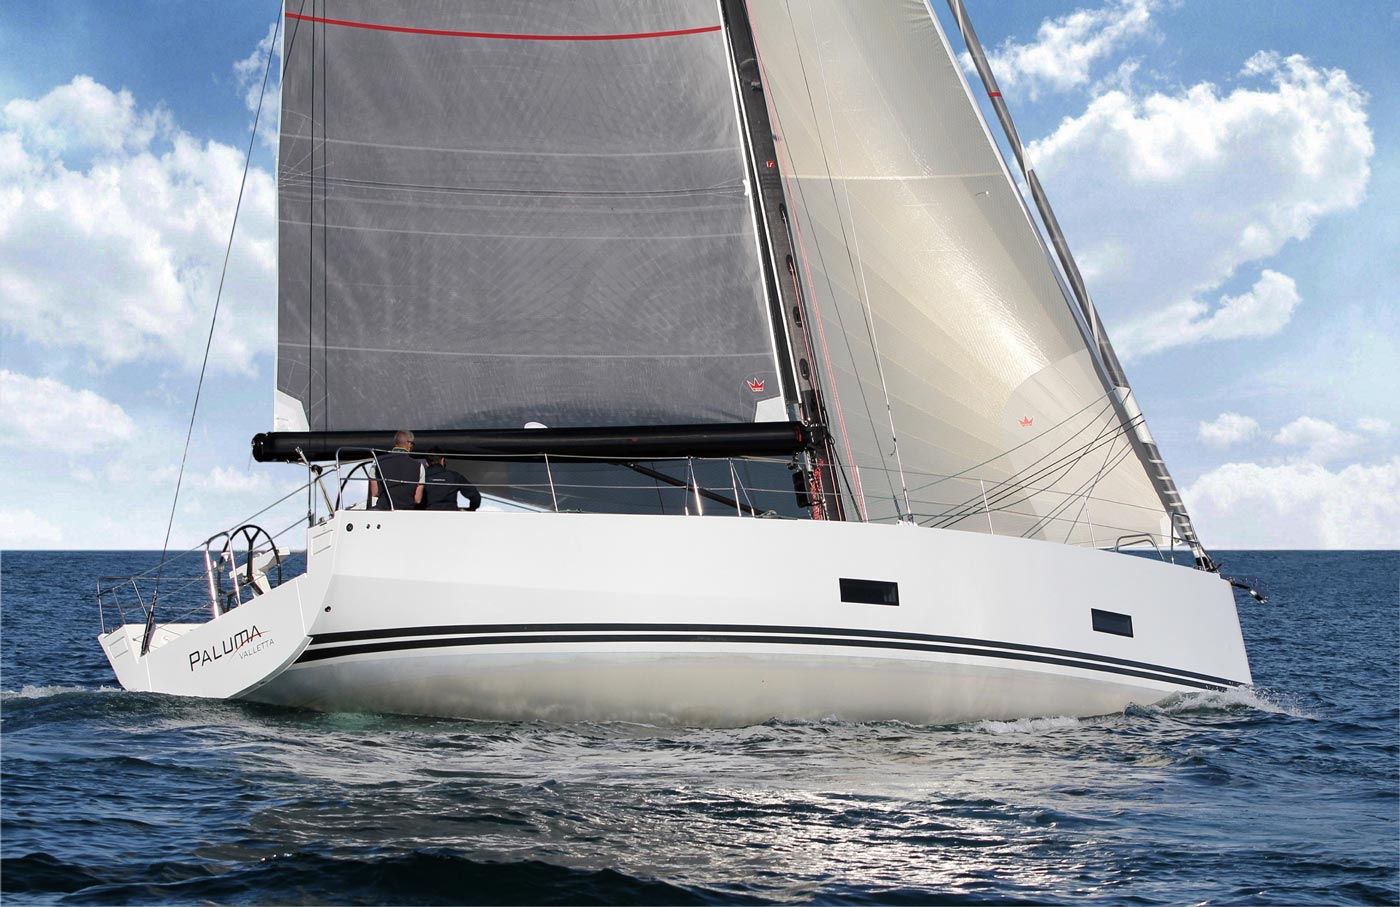 The Solaris 47 maiden sail on Sydney Harbour